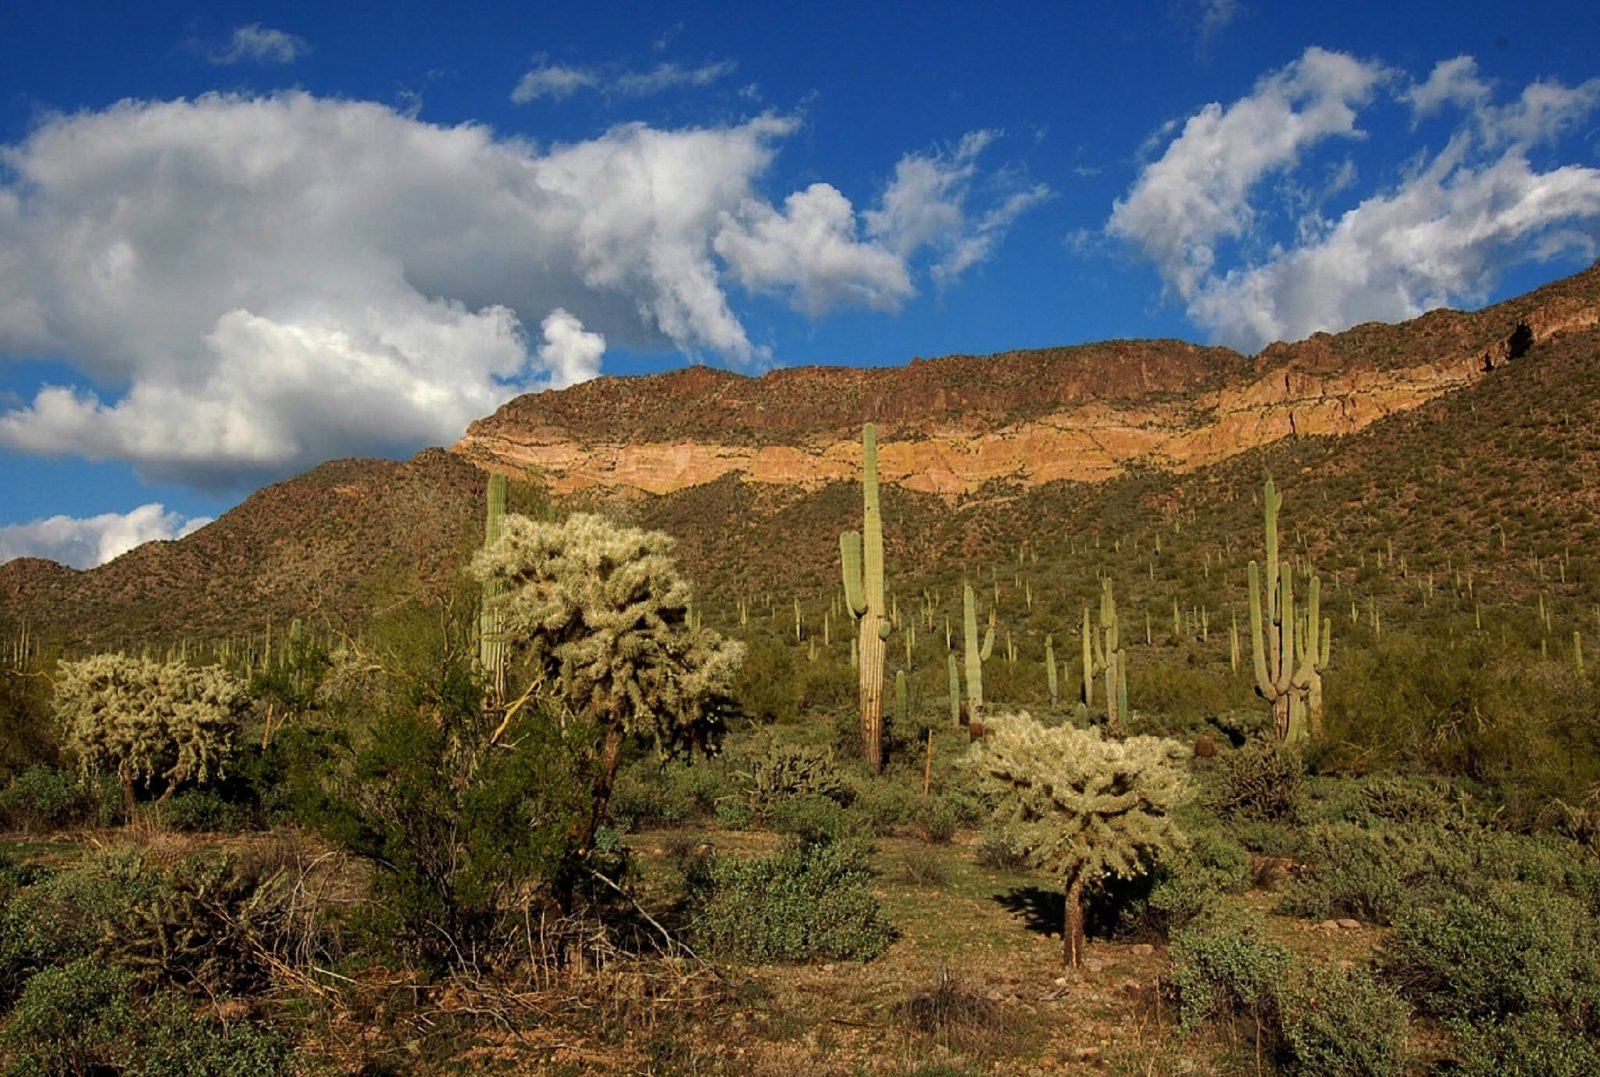 Usery Pass Mountain, Sonoran Desert. Photo by Midnight Believer via Flickr CC